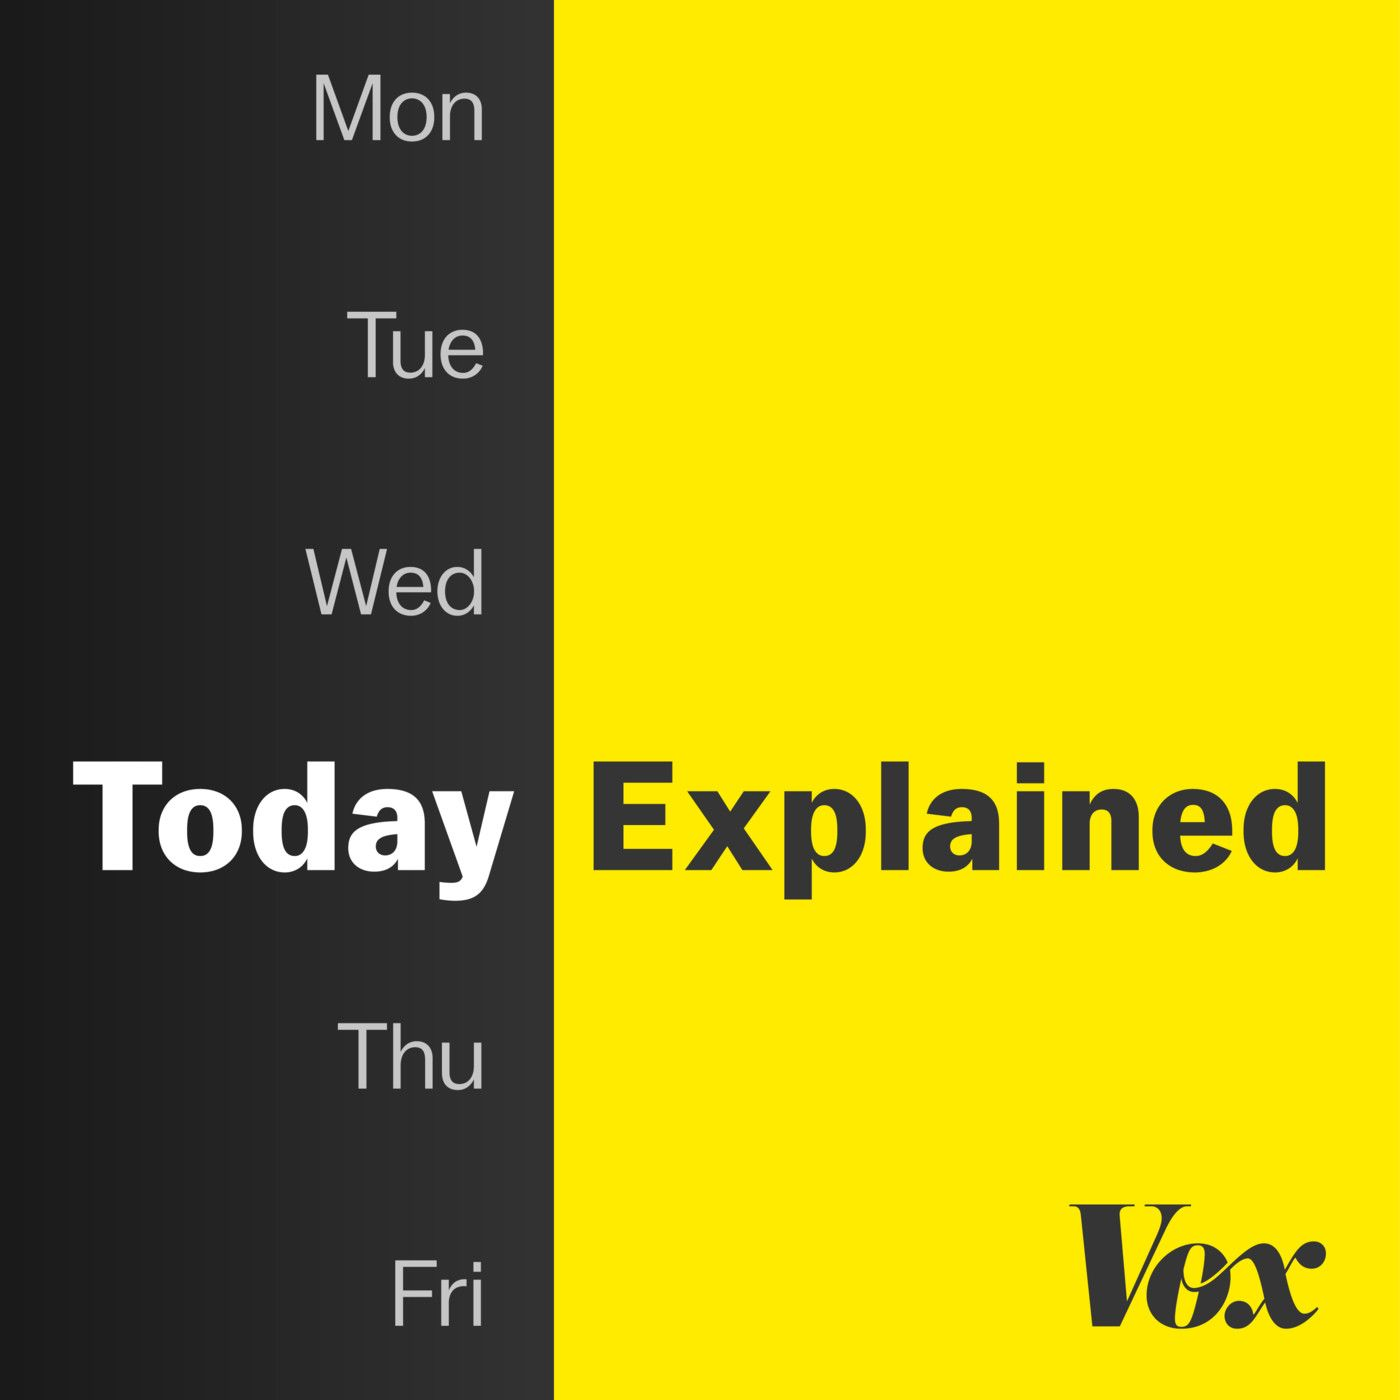 Today, Explained